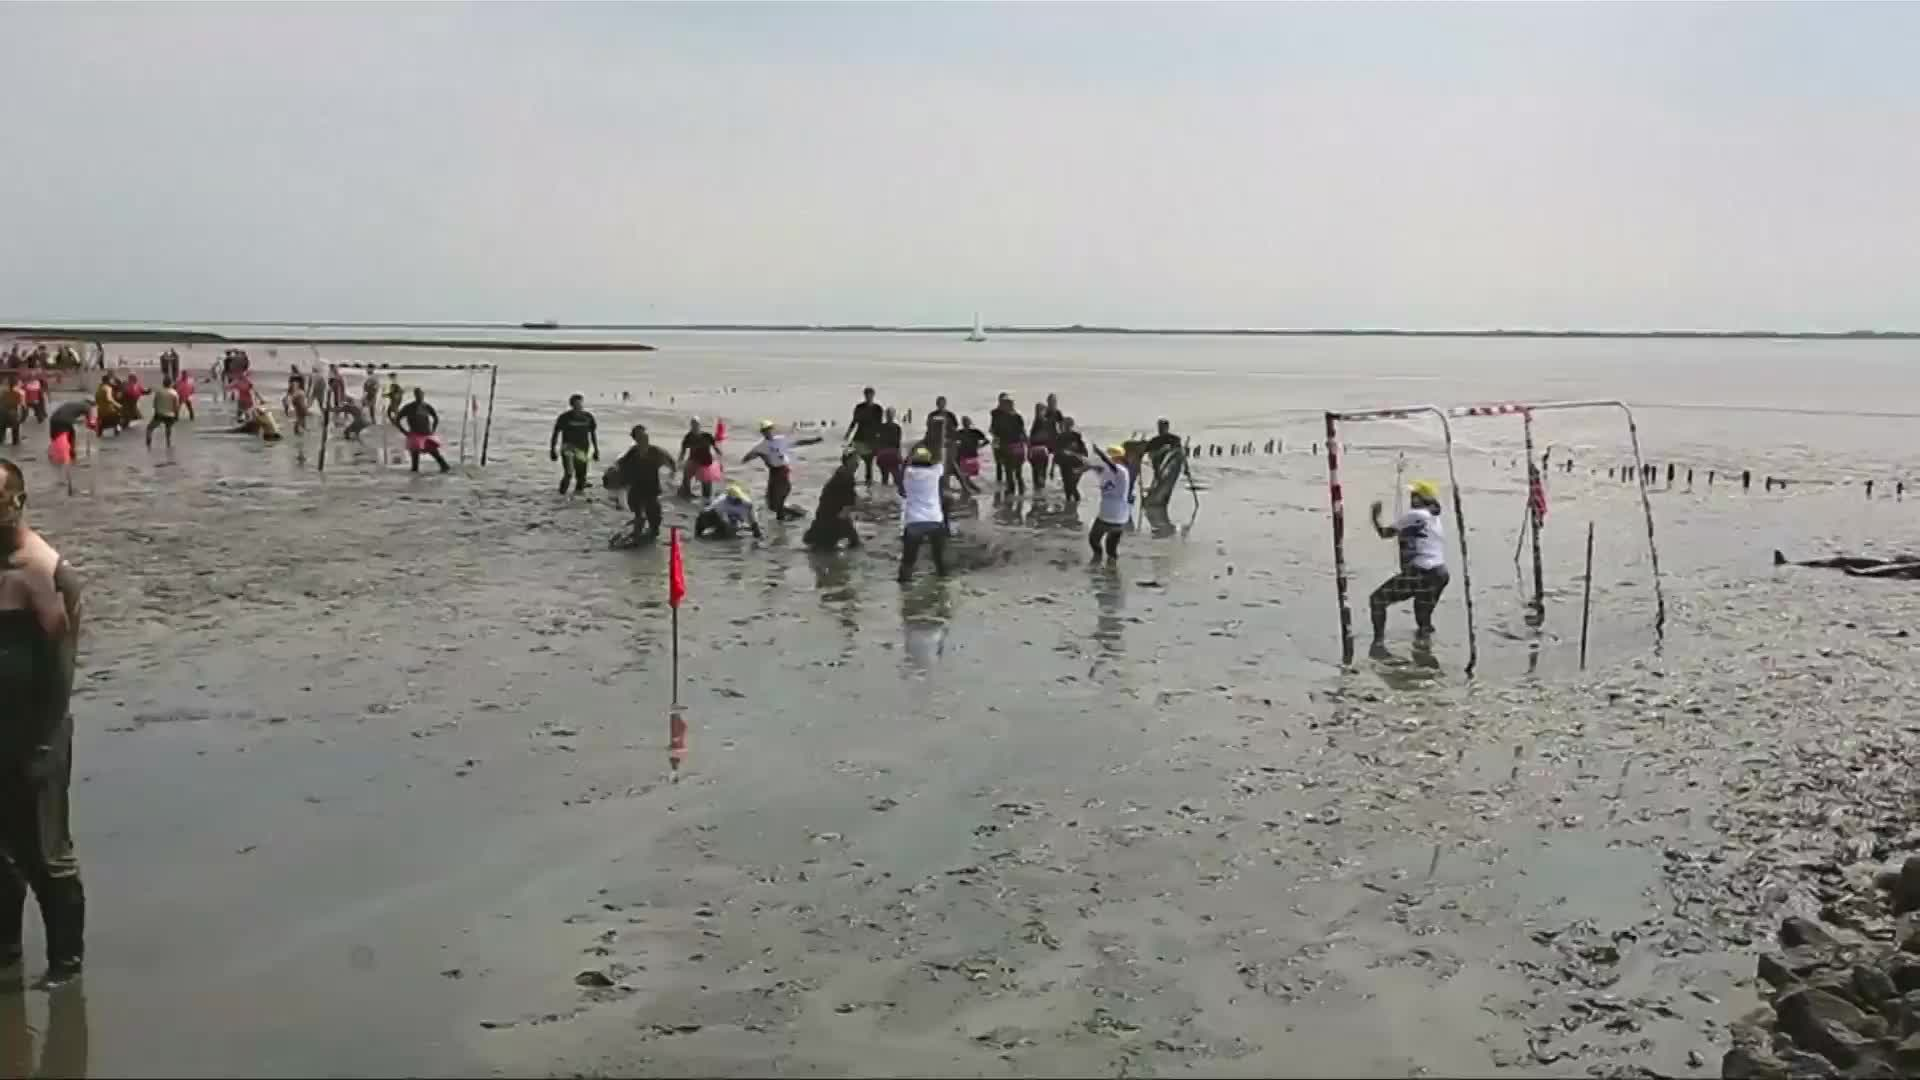 4,000 people attended Mud Olympics in Germany to fight cancer